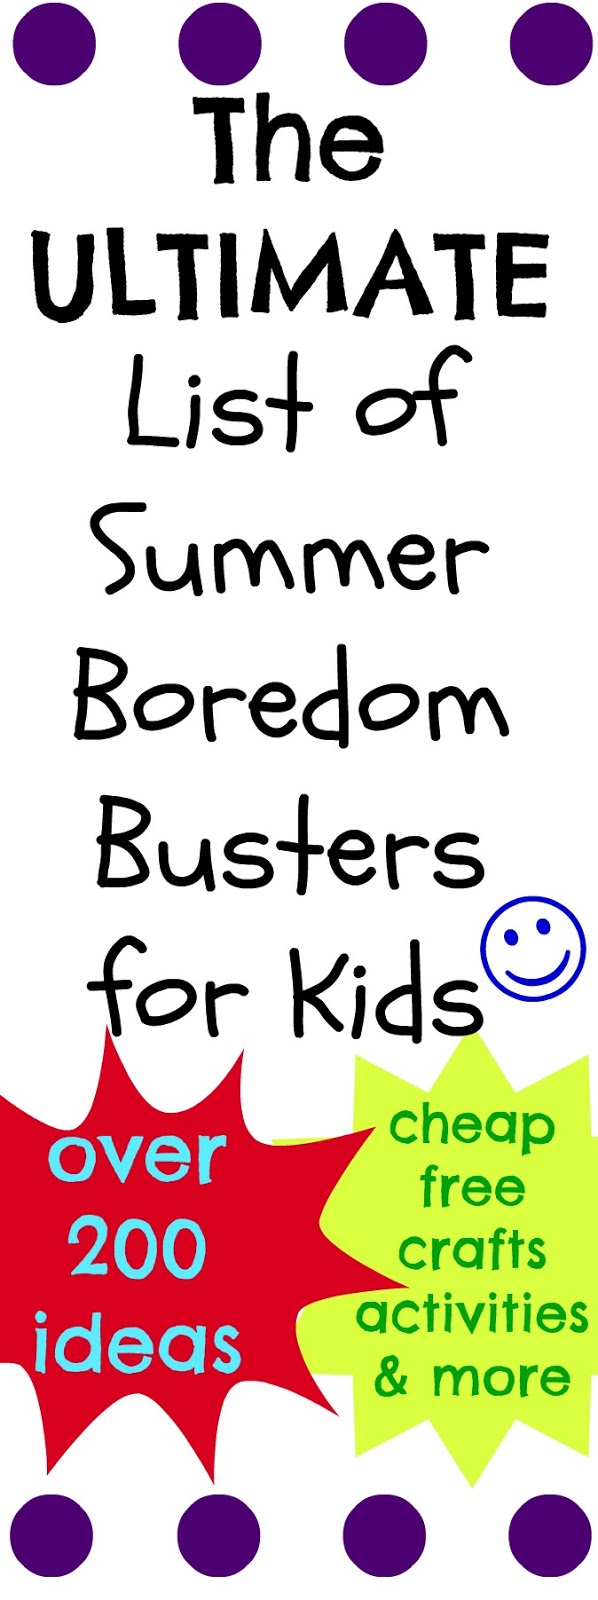 Summer activities for kids the ultimate list of summer boredom